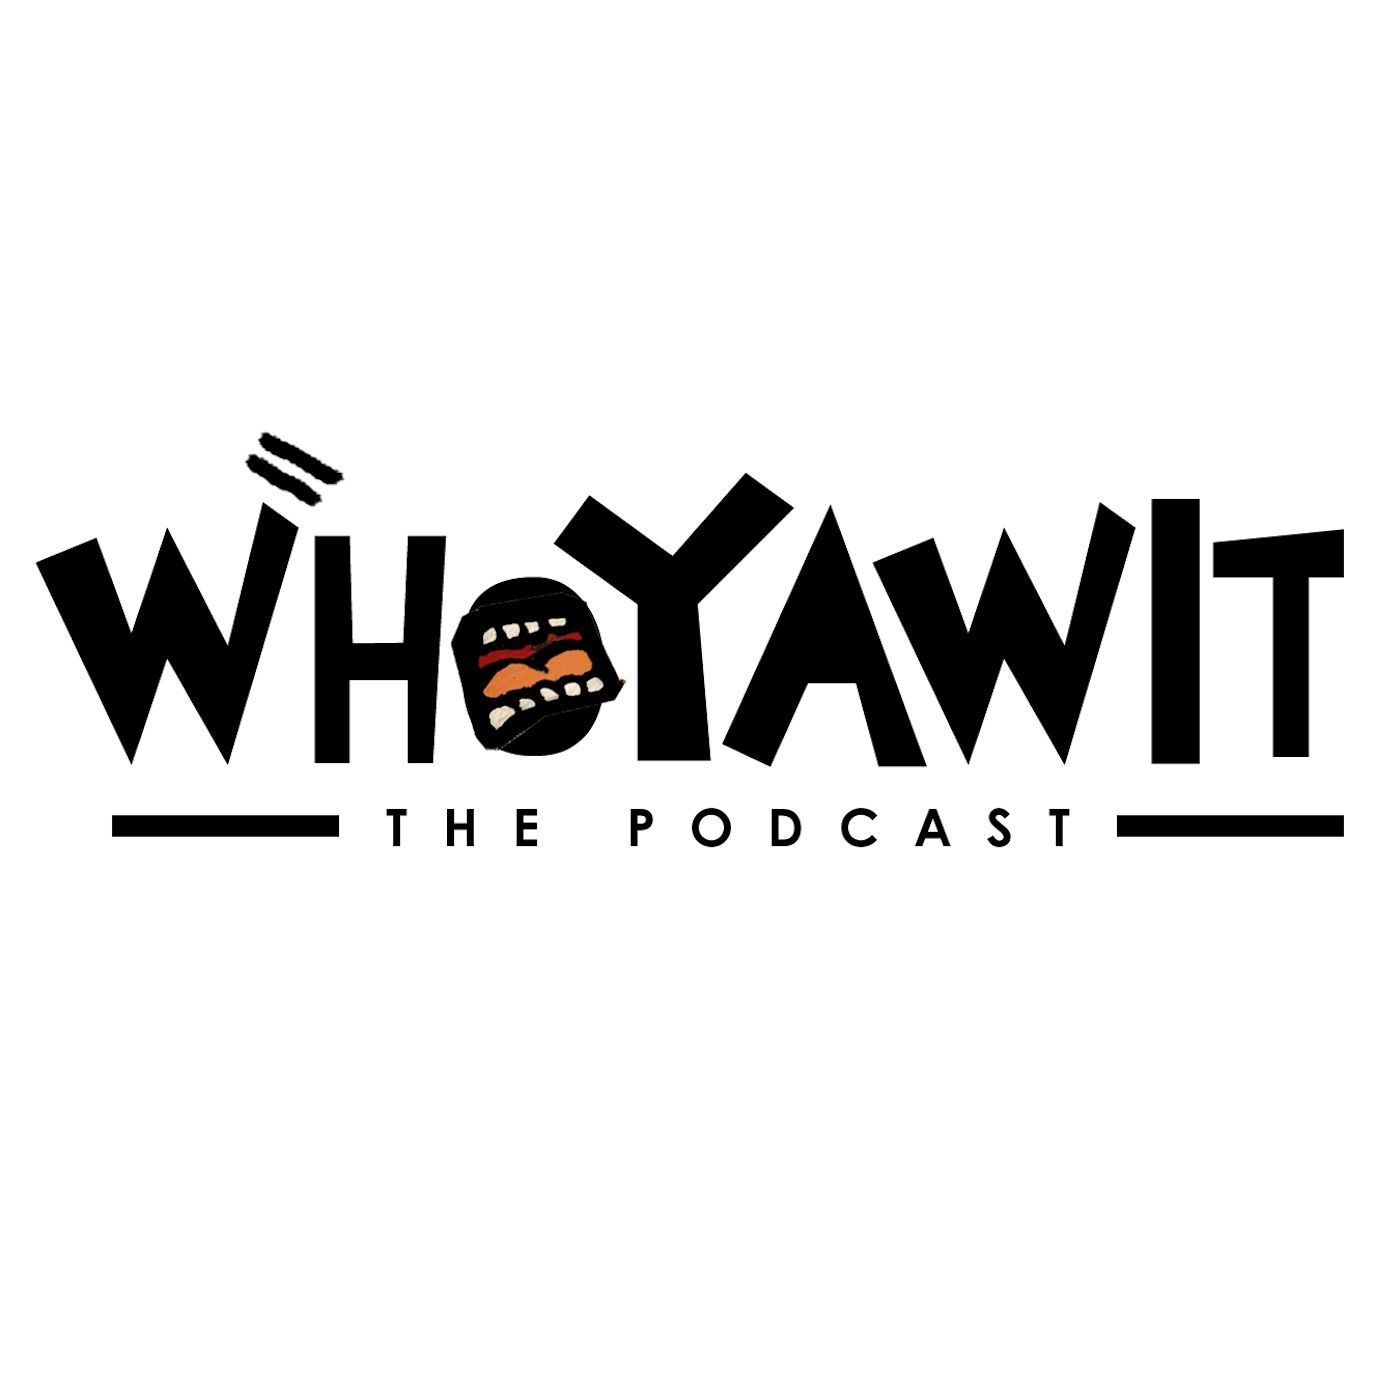 WHOYAWIT THE PODCAST